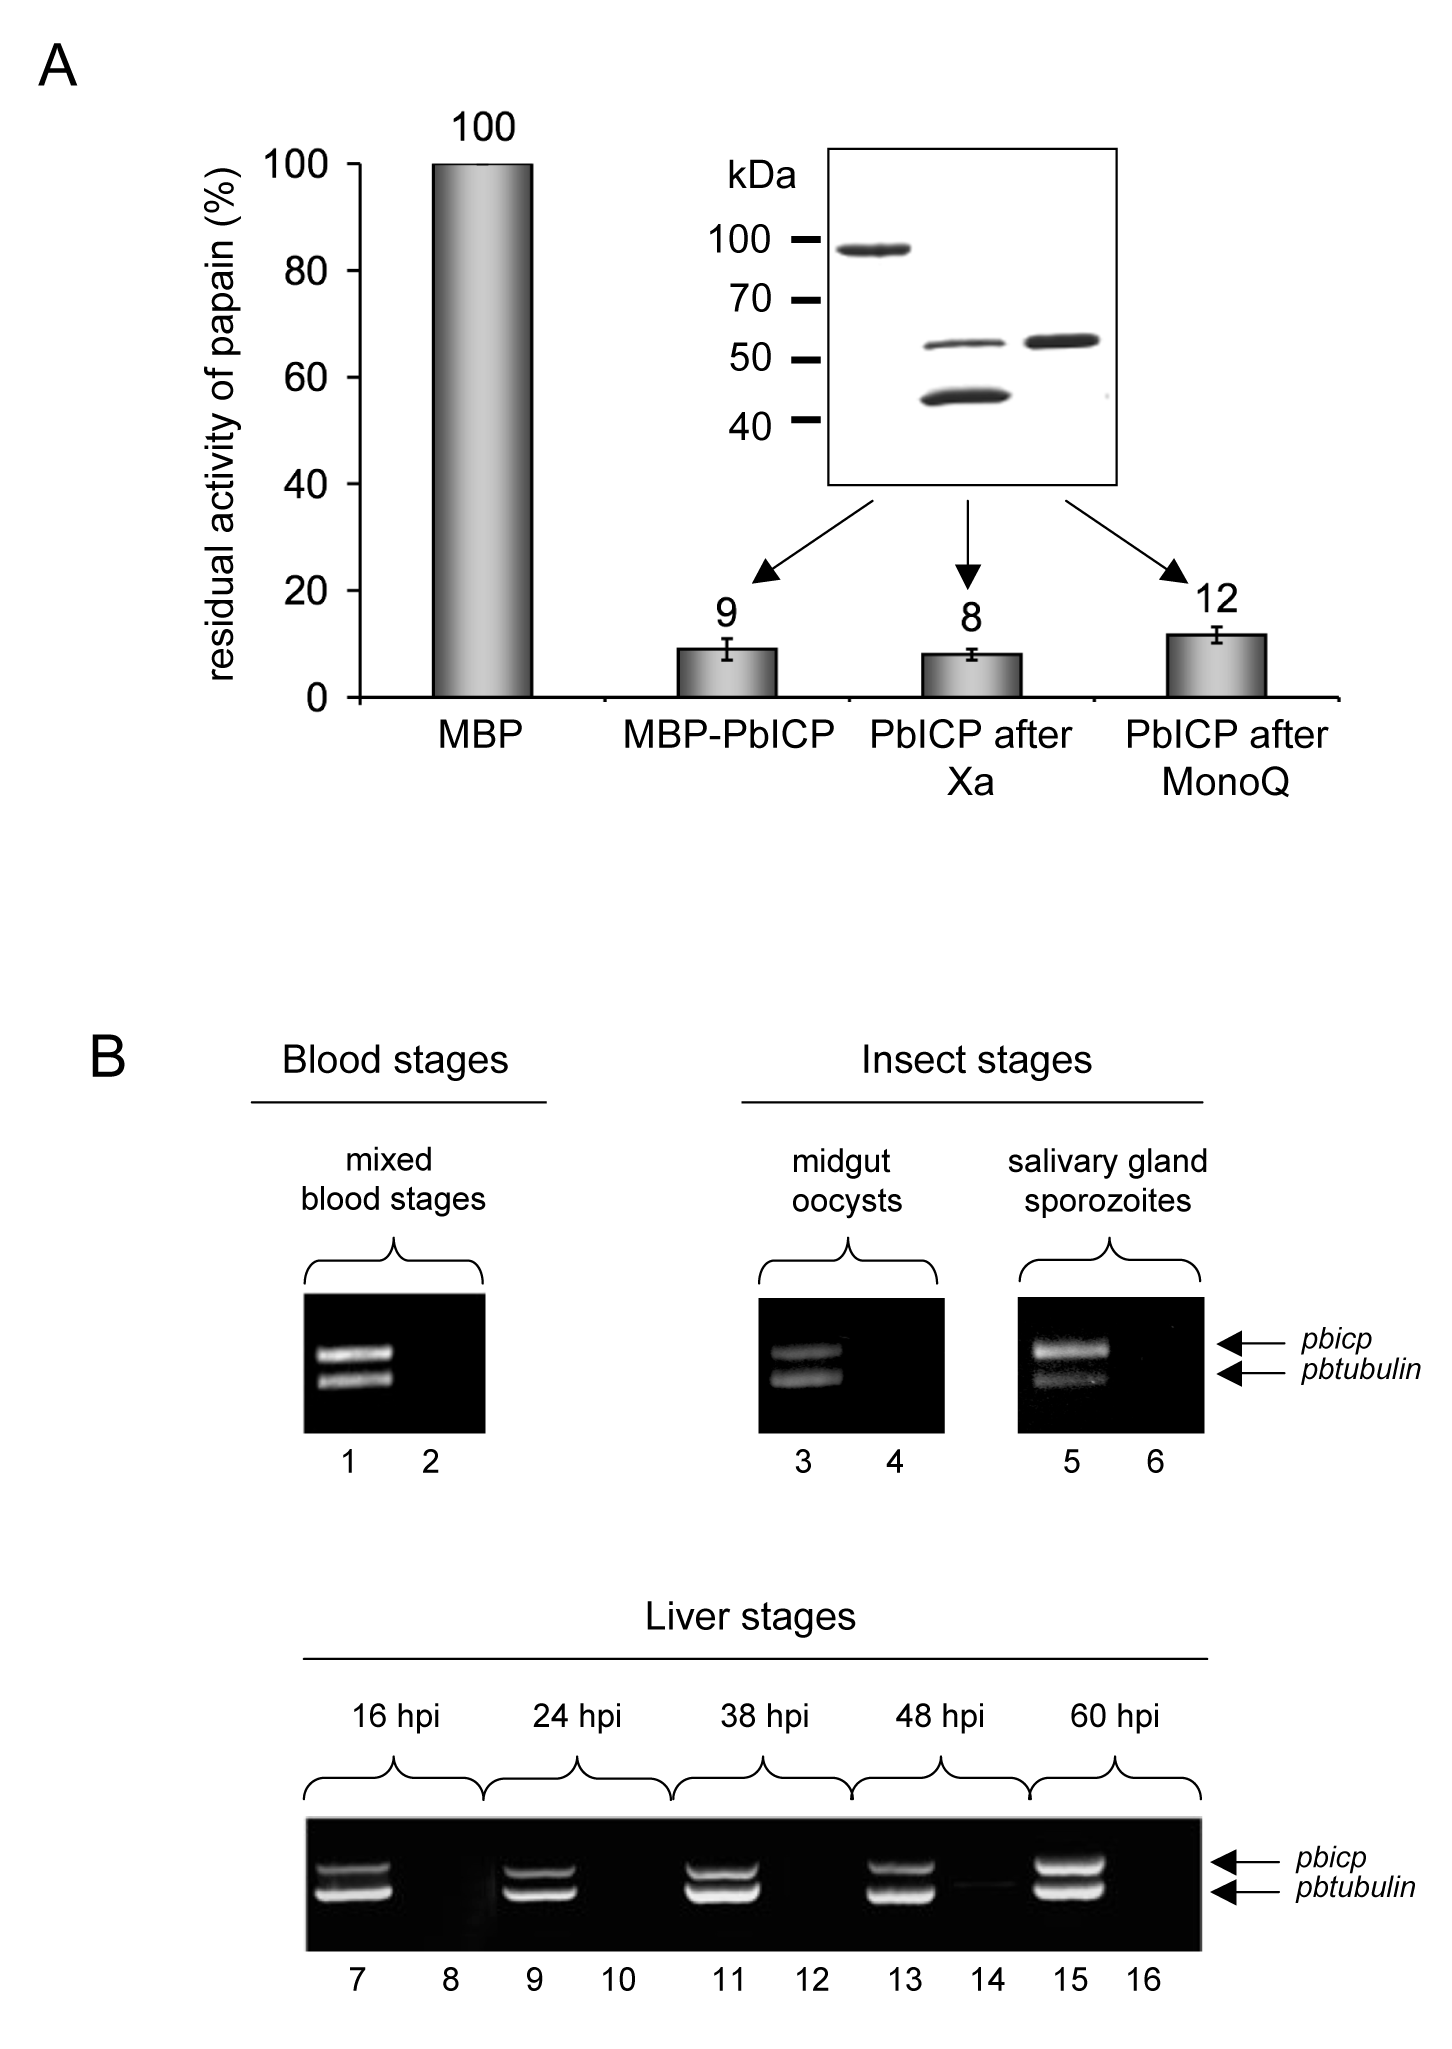 PbICP is a potent inhibitor of C1 cysteine proteases and the <i>pbicp</i> gene is constitutively transcribed.